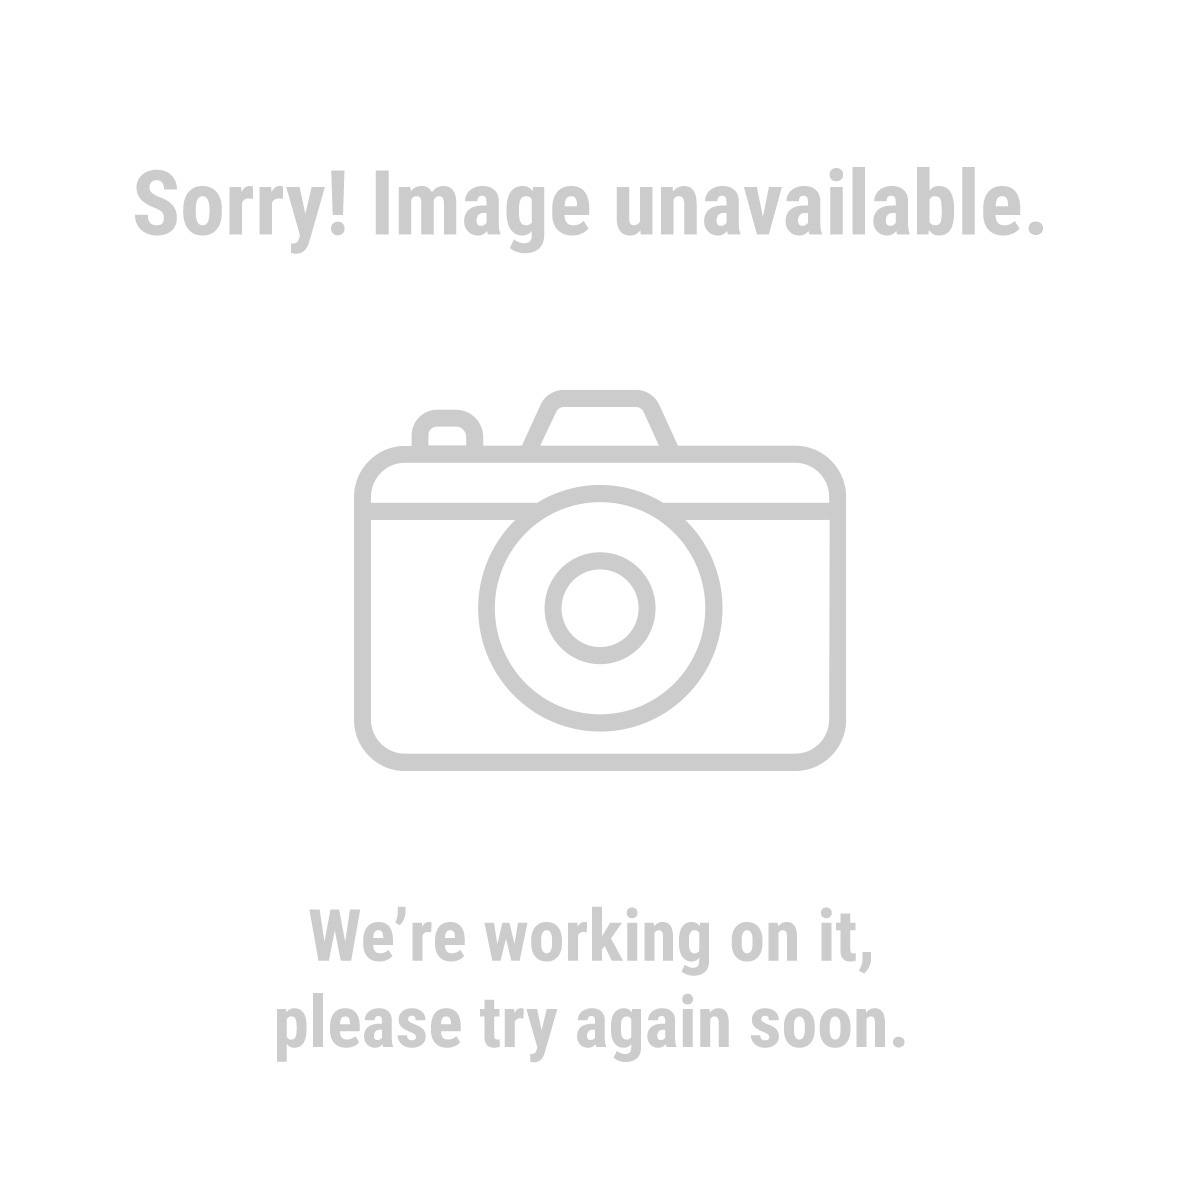 4 Tier 5 Ft. Greenhouse